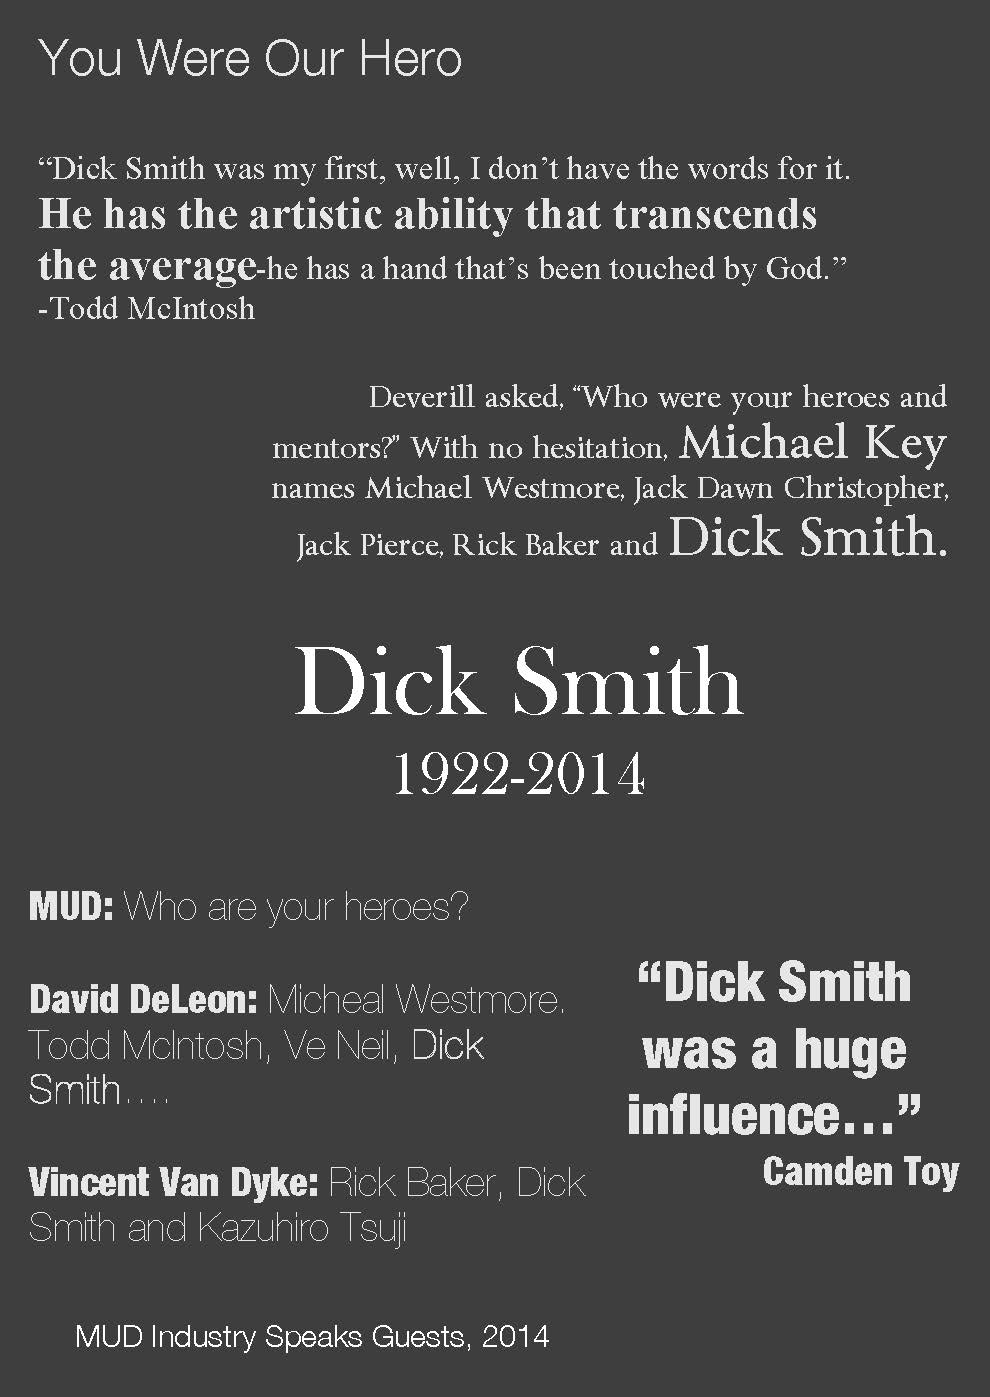 dick smith industry speaks quotes